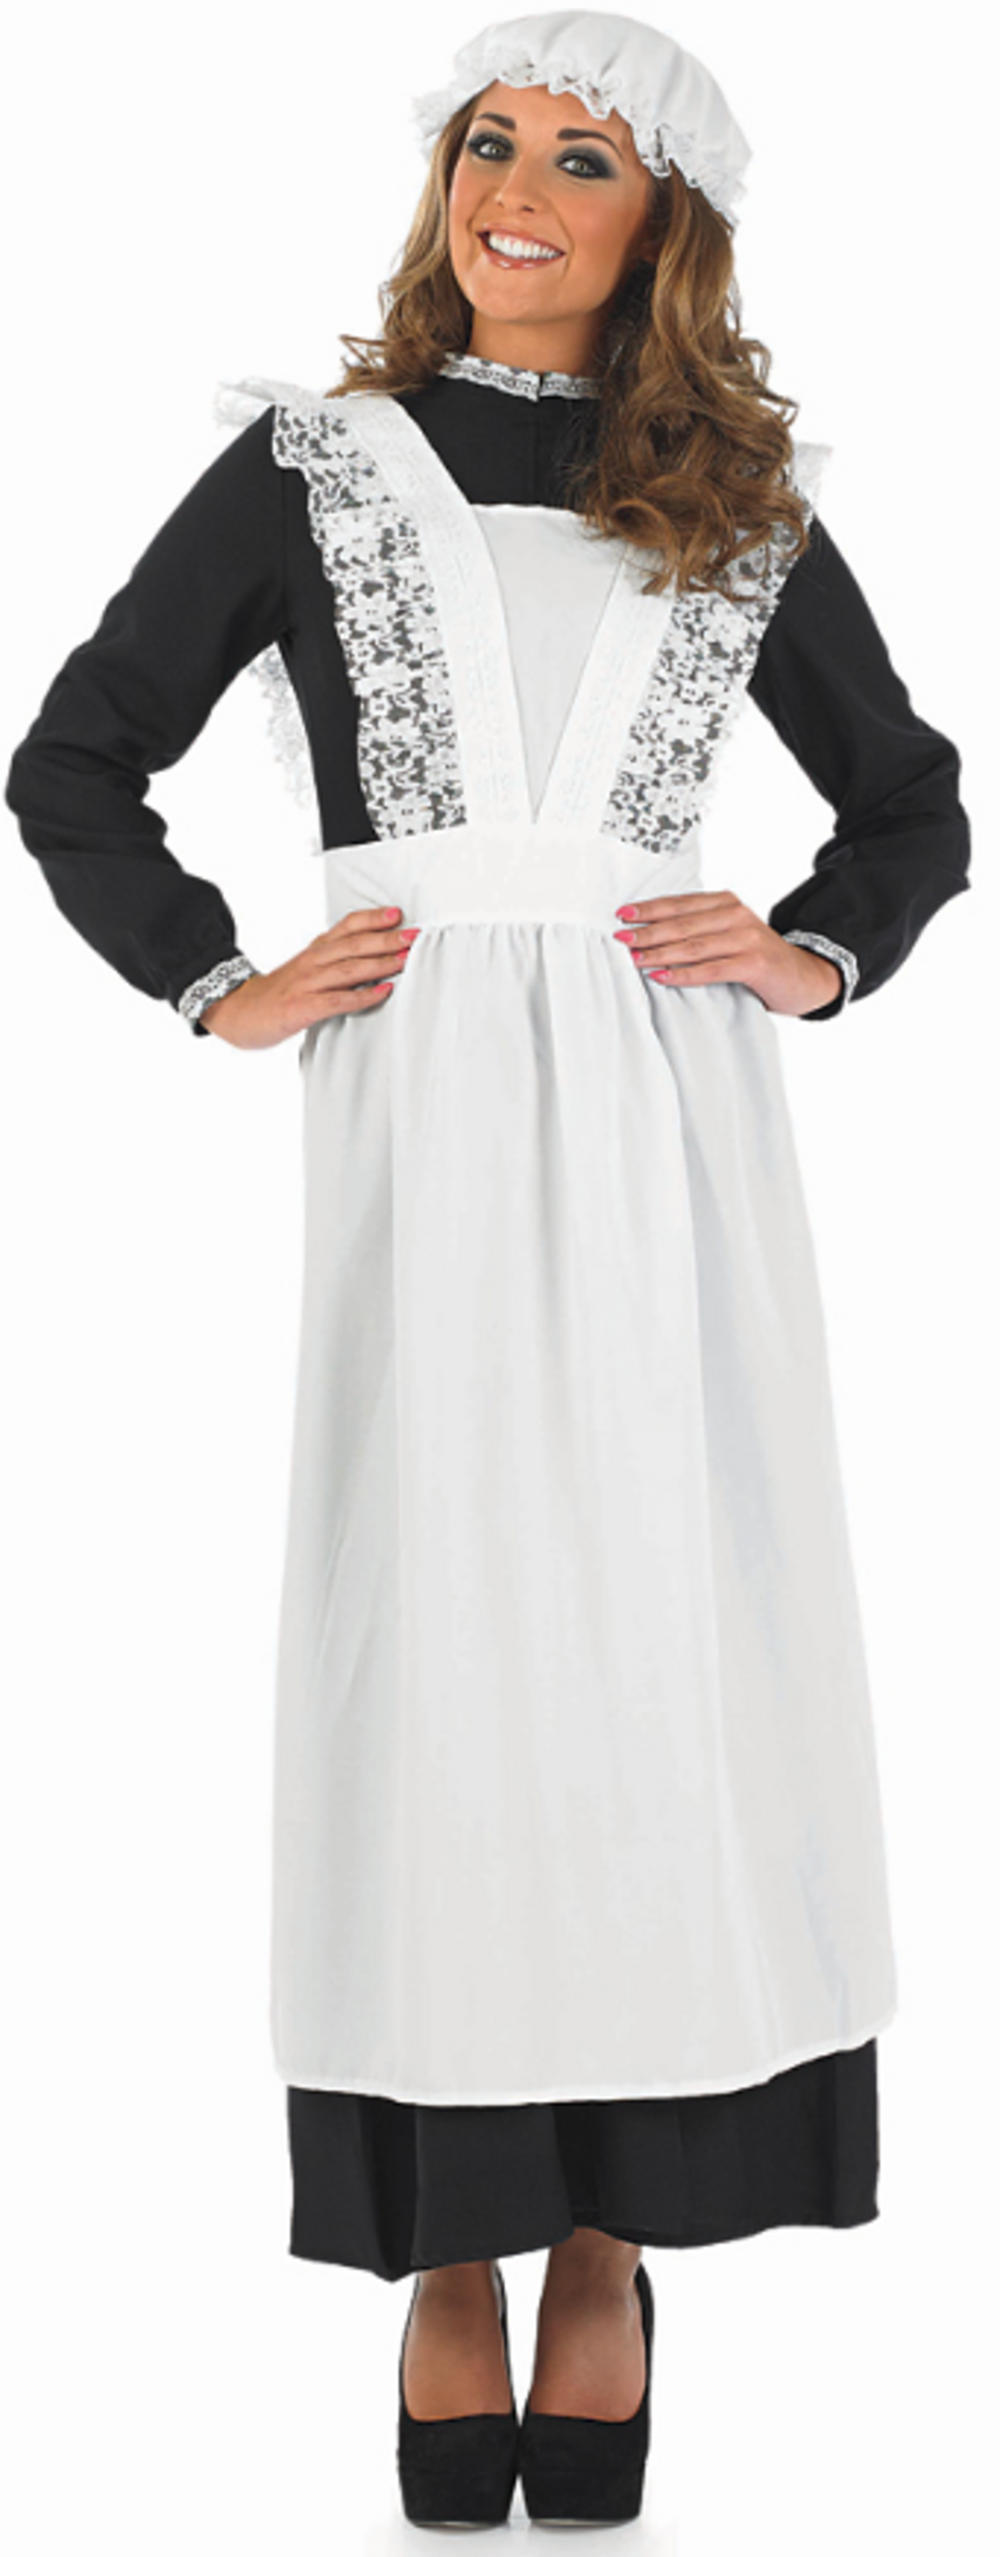 Old Time Maid Fancy Dress Costume